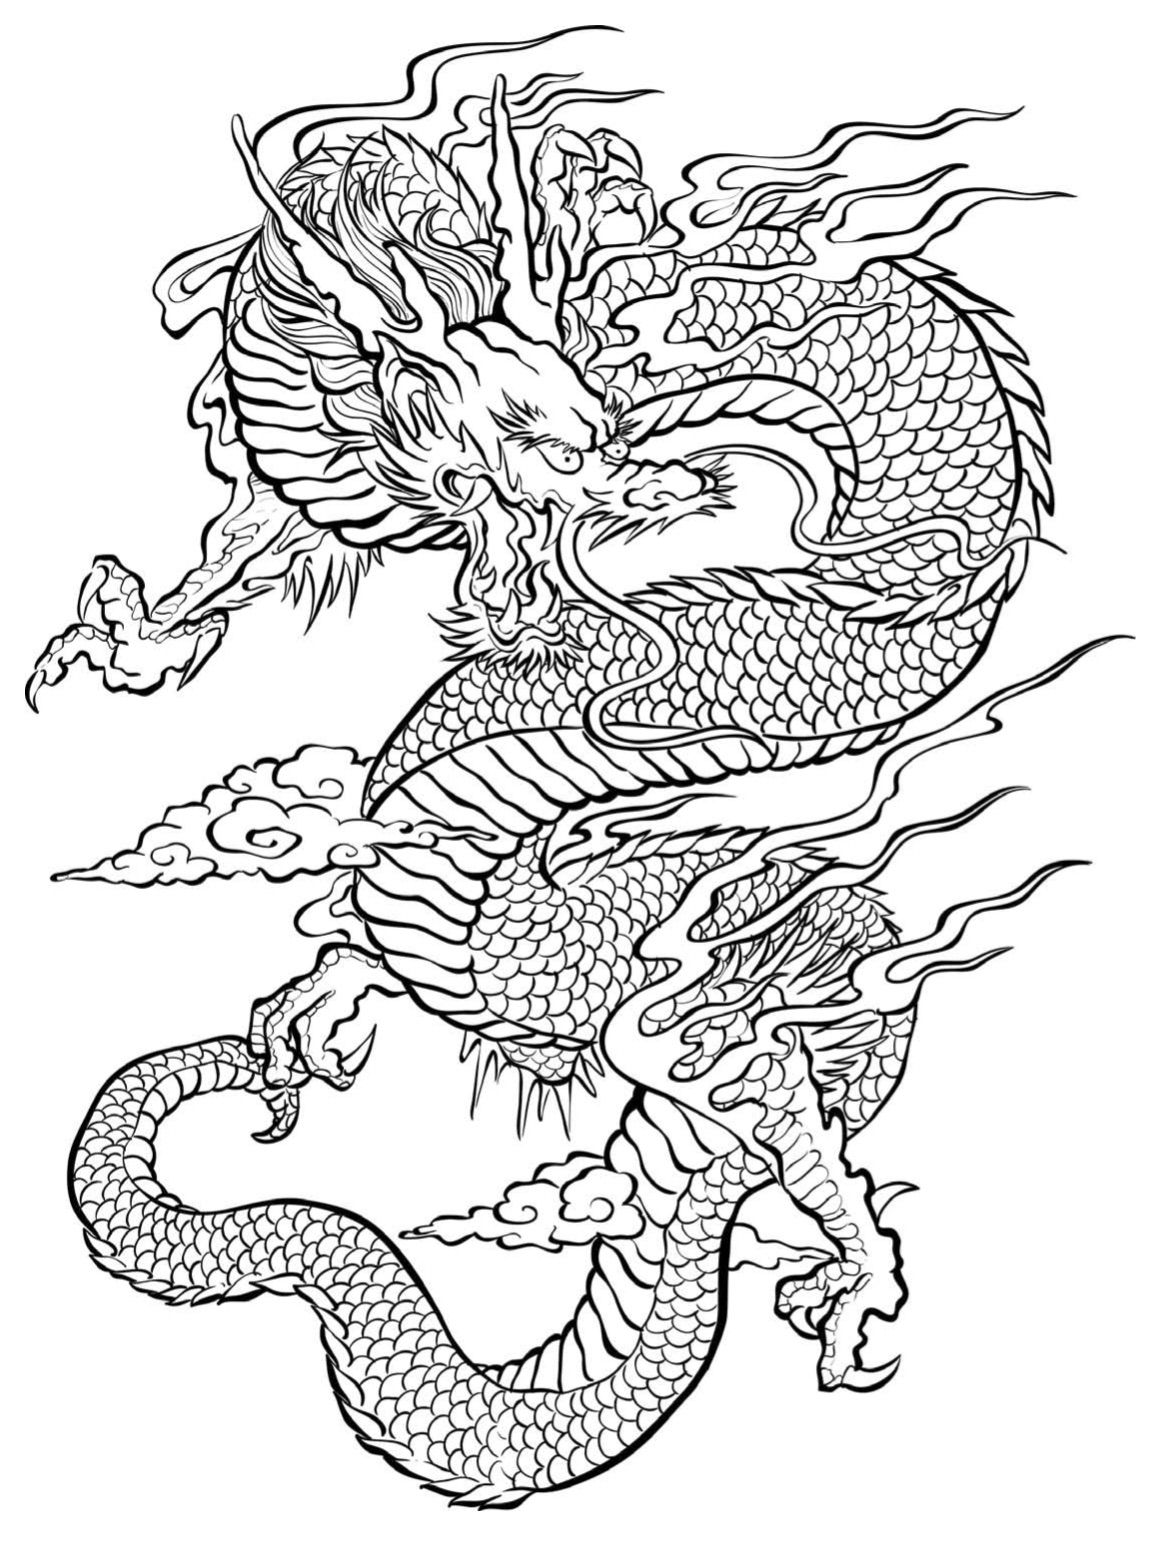 Free Dragon Coloring Page to Print (Adult Coloring) | Azteca